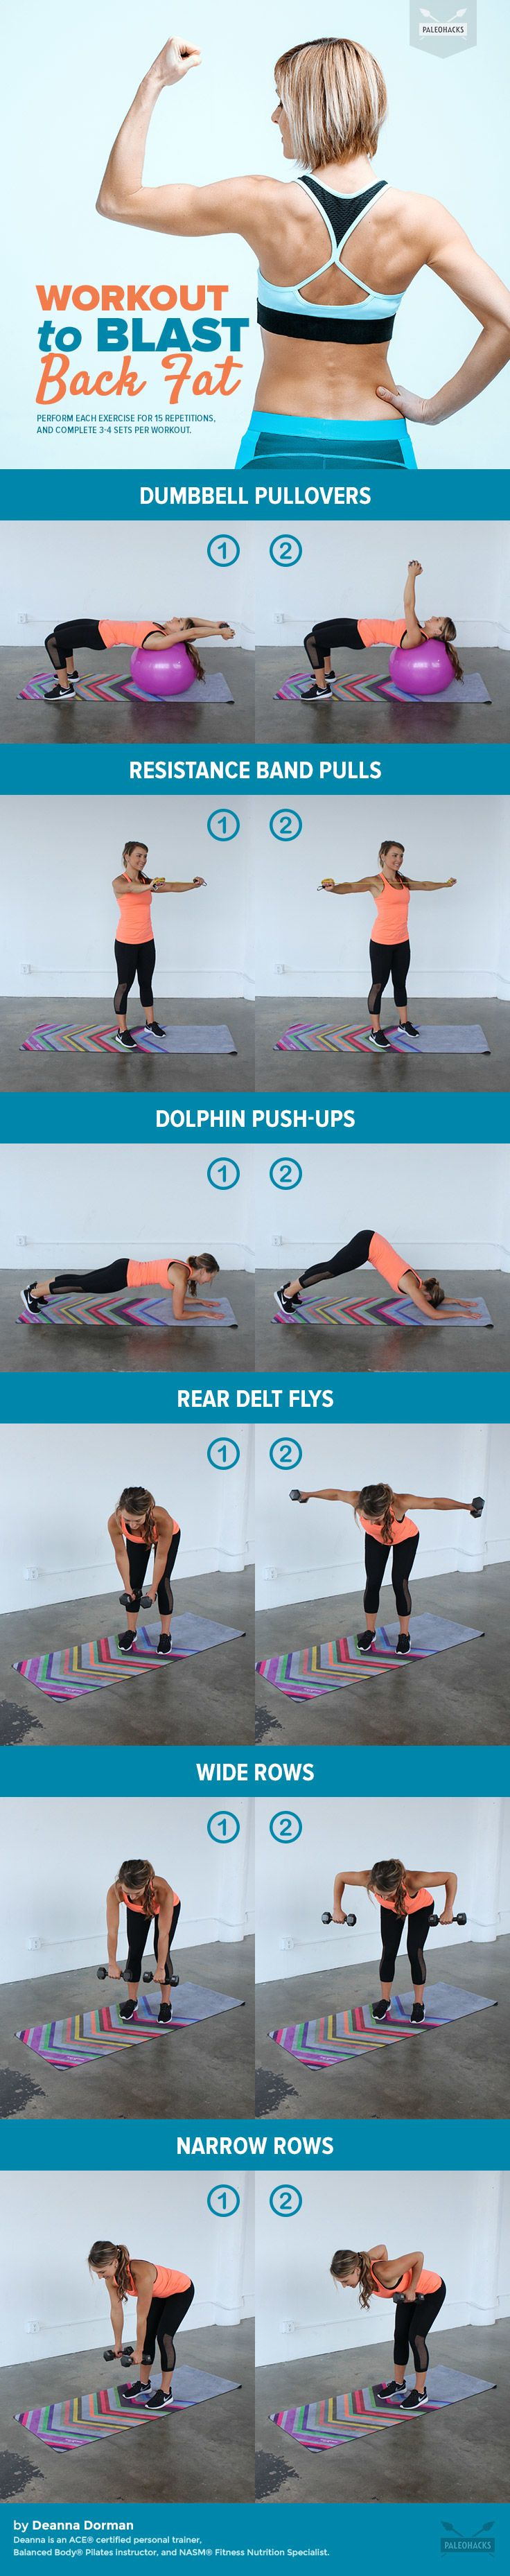 Lower Back Fat Workout